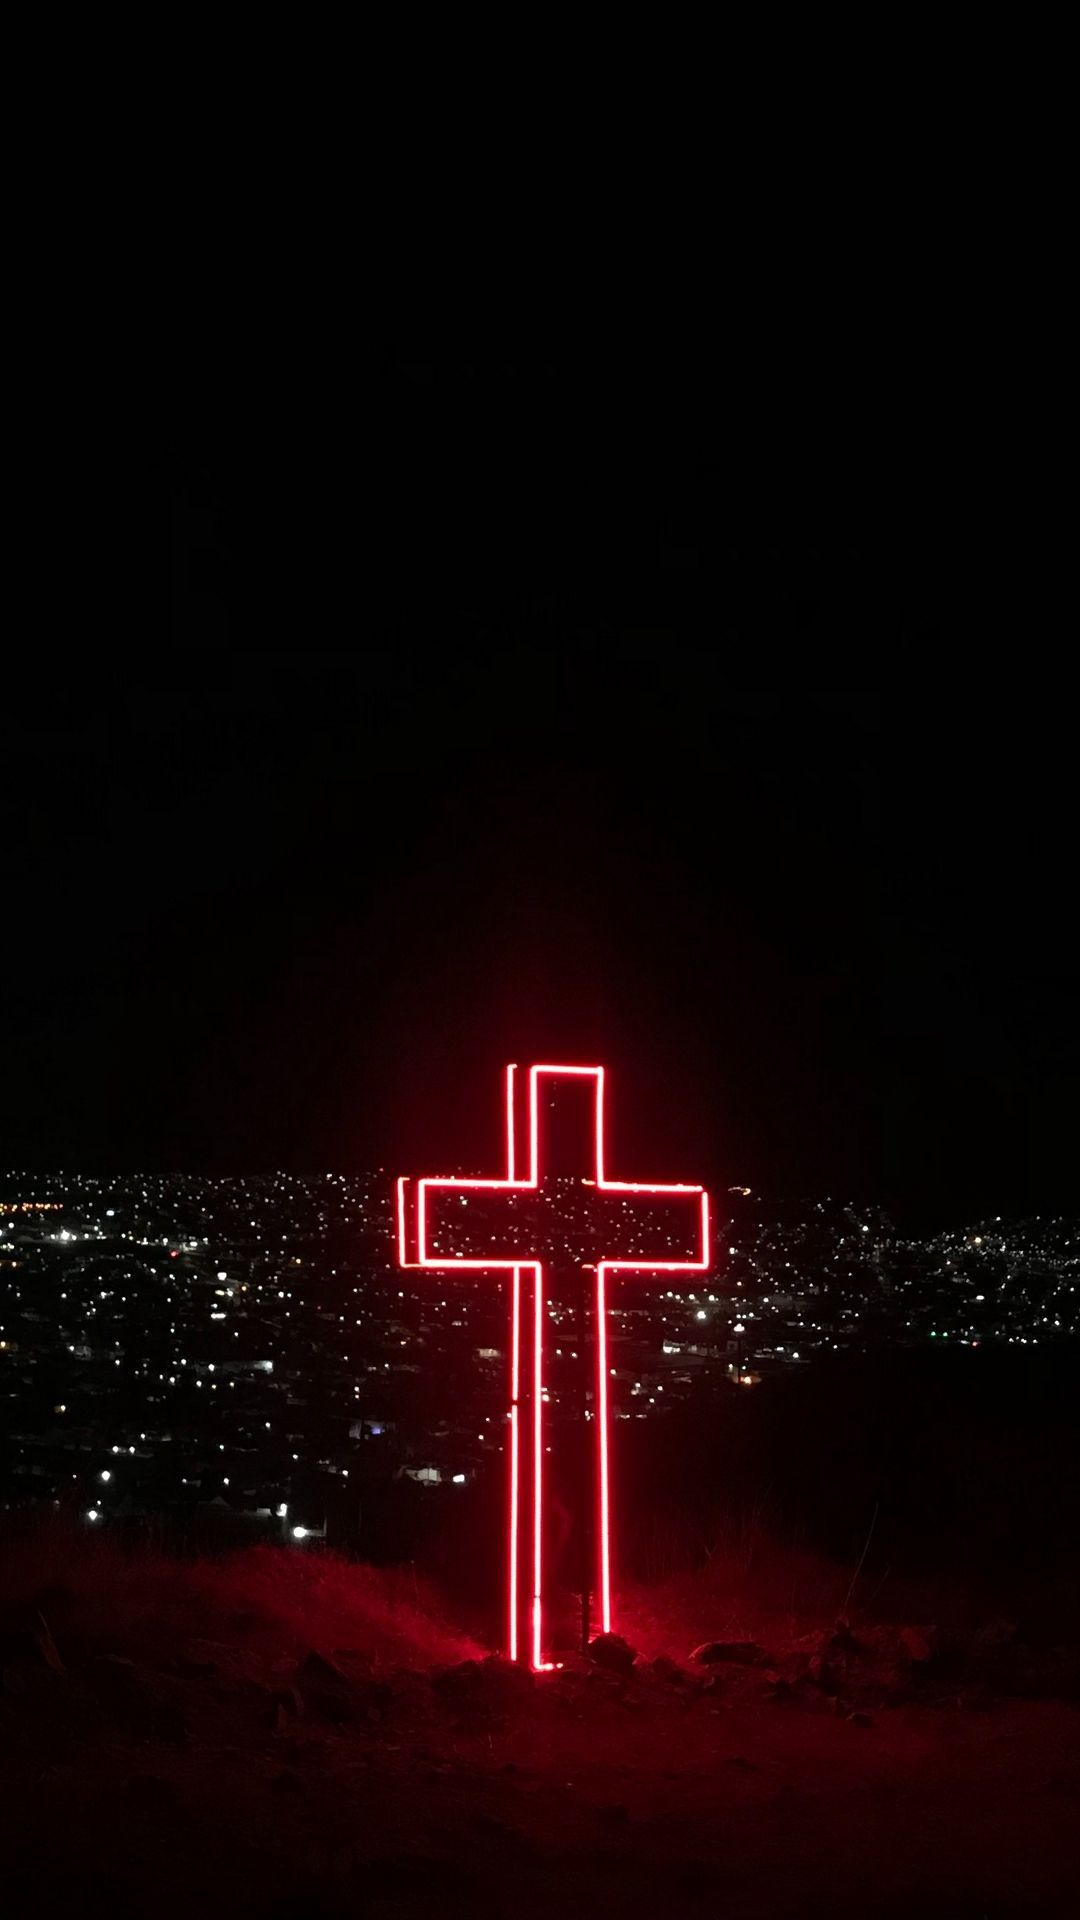 cross iphone wallpapers top free cross iphone backgrounds wallpaperaccess cross iphone wallpapers top free